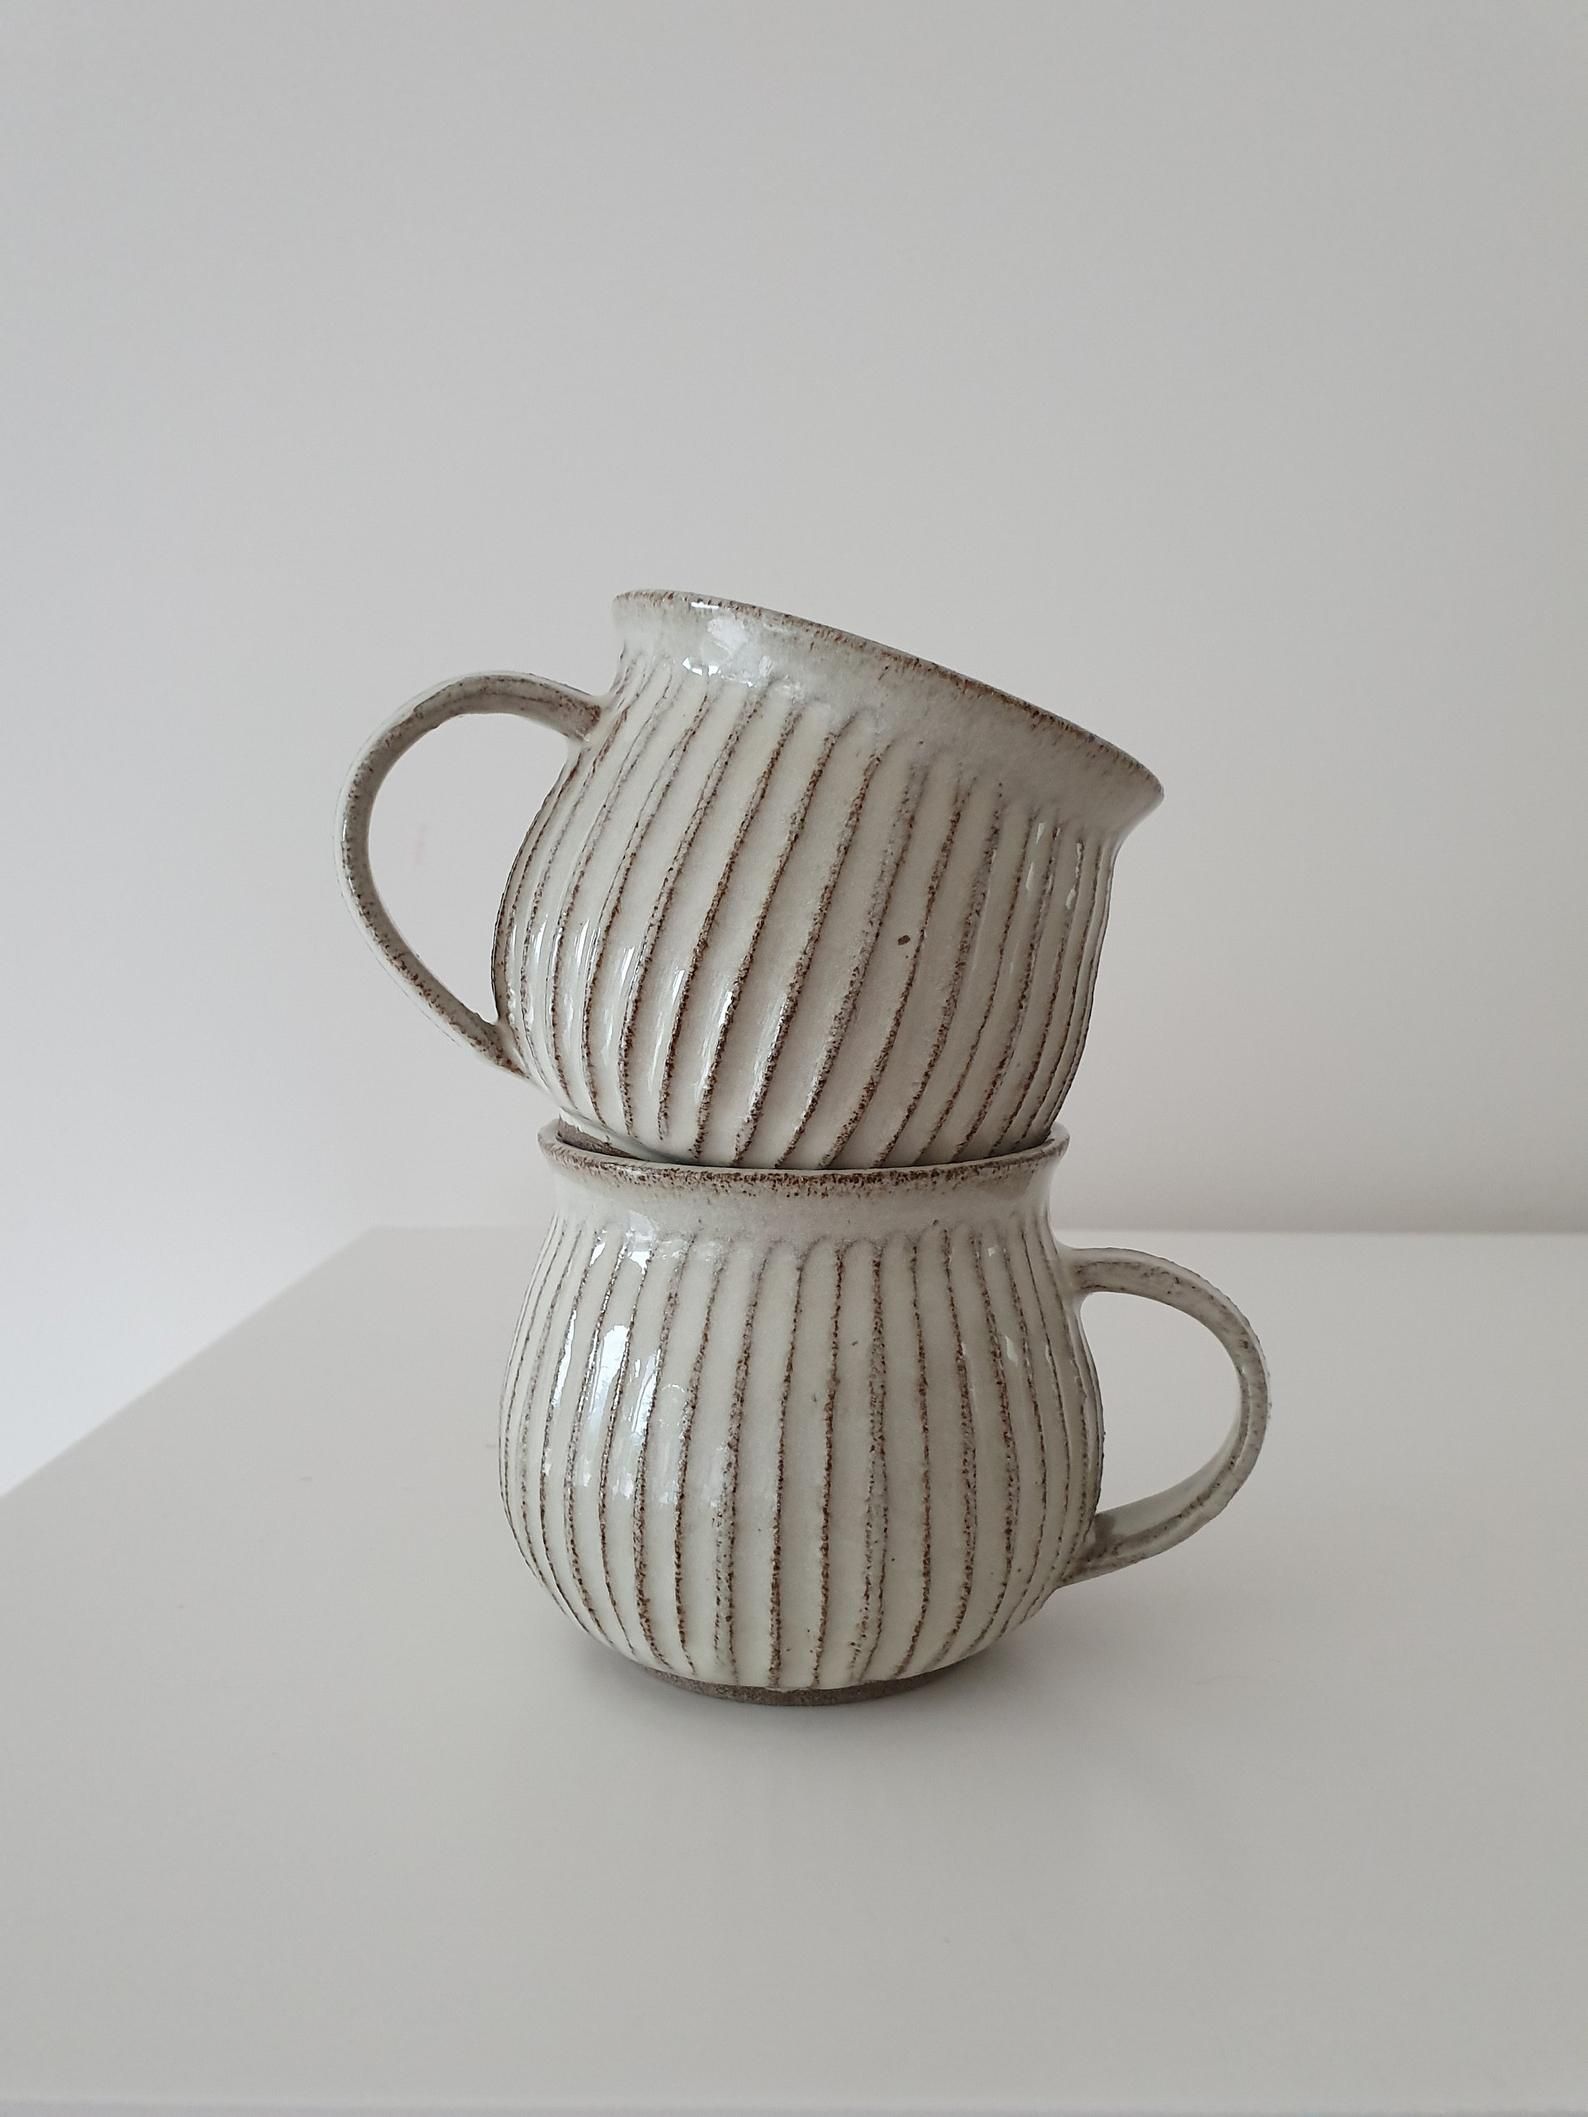 Set of 2 White Ceramic Tea Mugs, Pottery Coffee Cups with a Handle